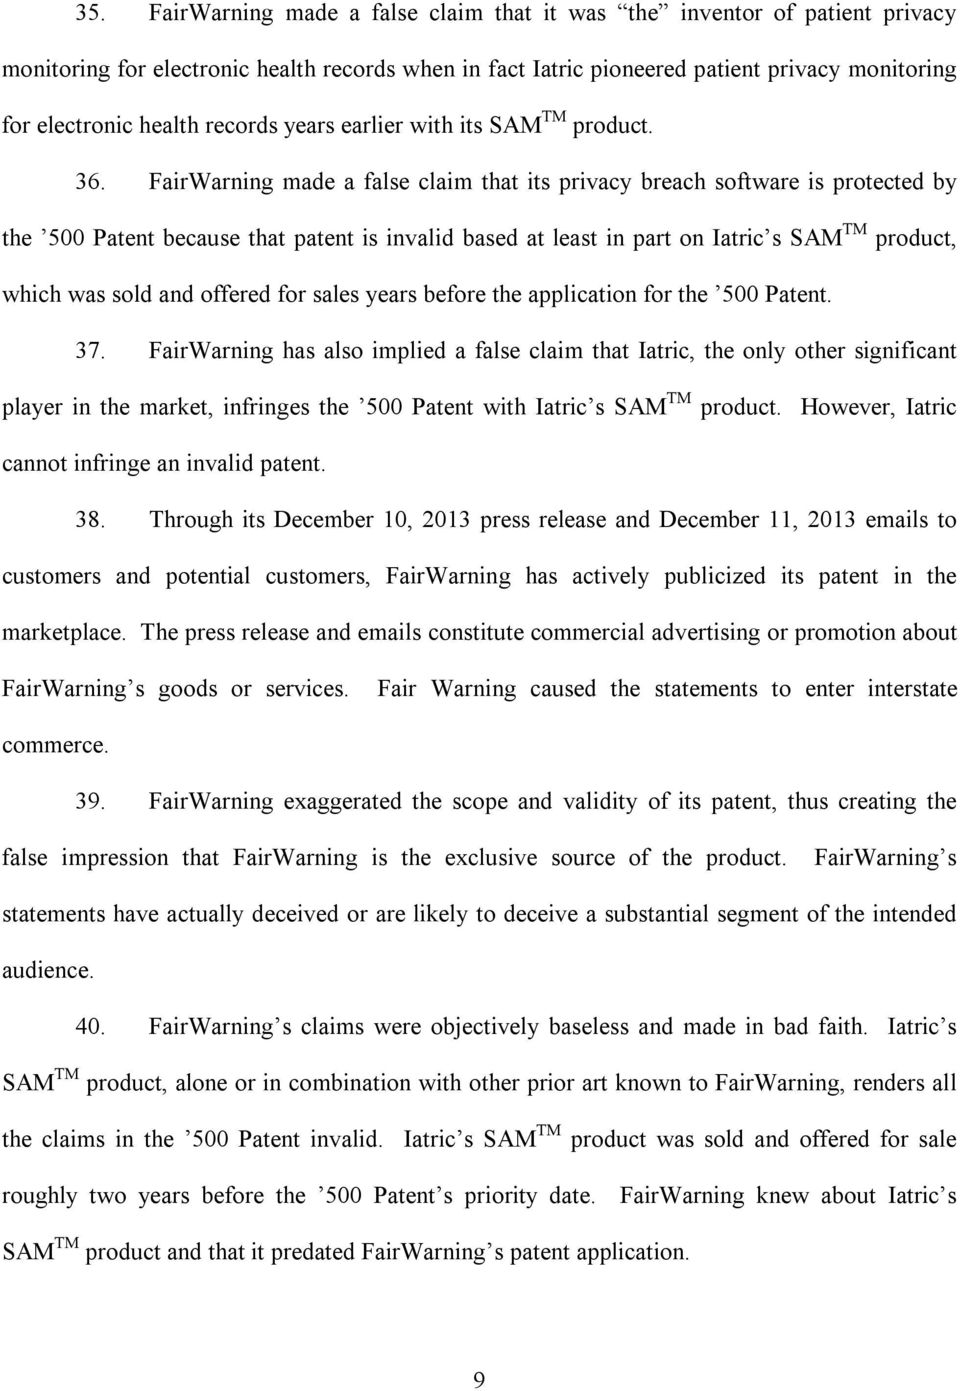 FairWarning made a false claim that its privacy breach software is protected by the 500 Patent because that patent is invalid based at least in part on Iatric s SAM TM product, which was sold and